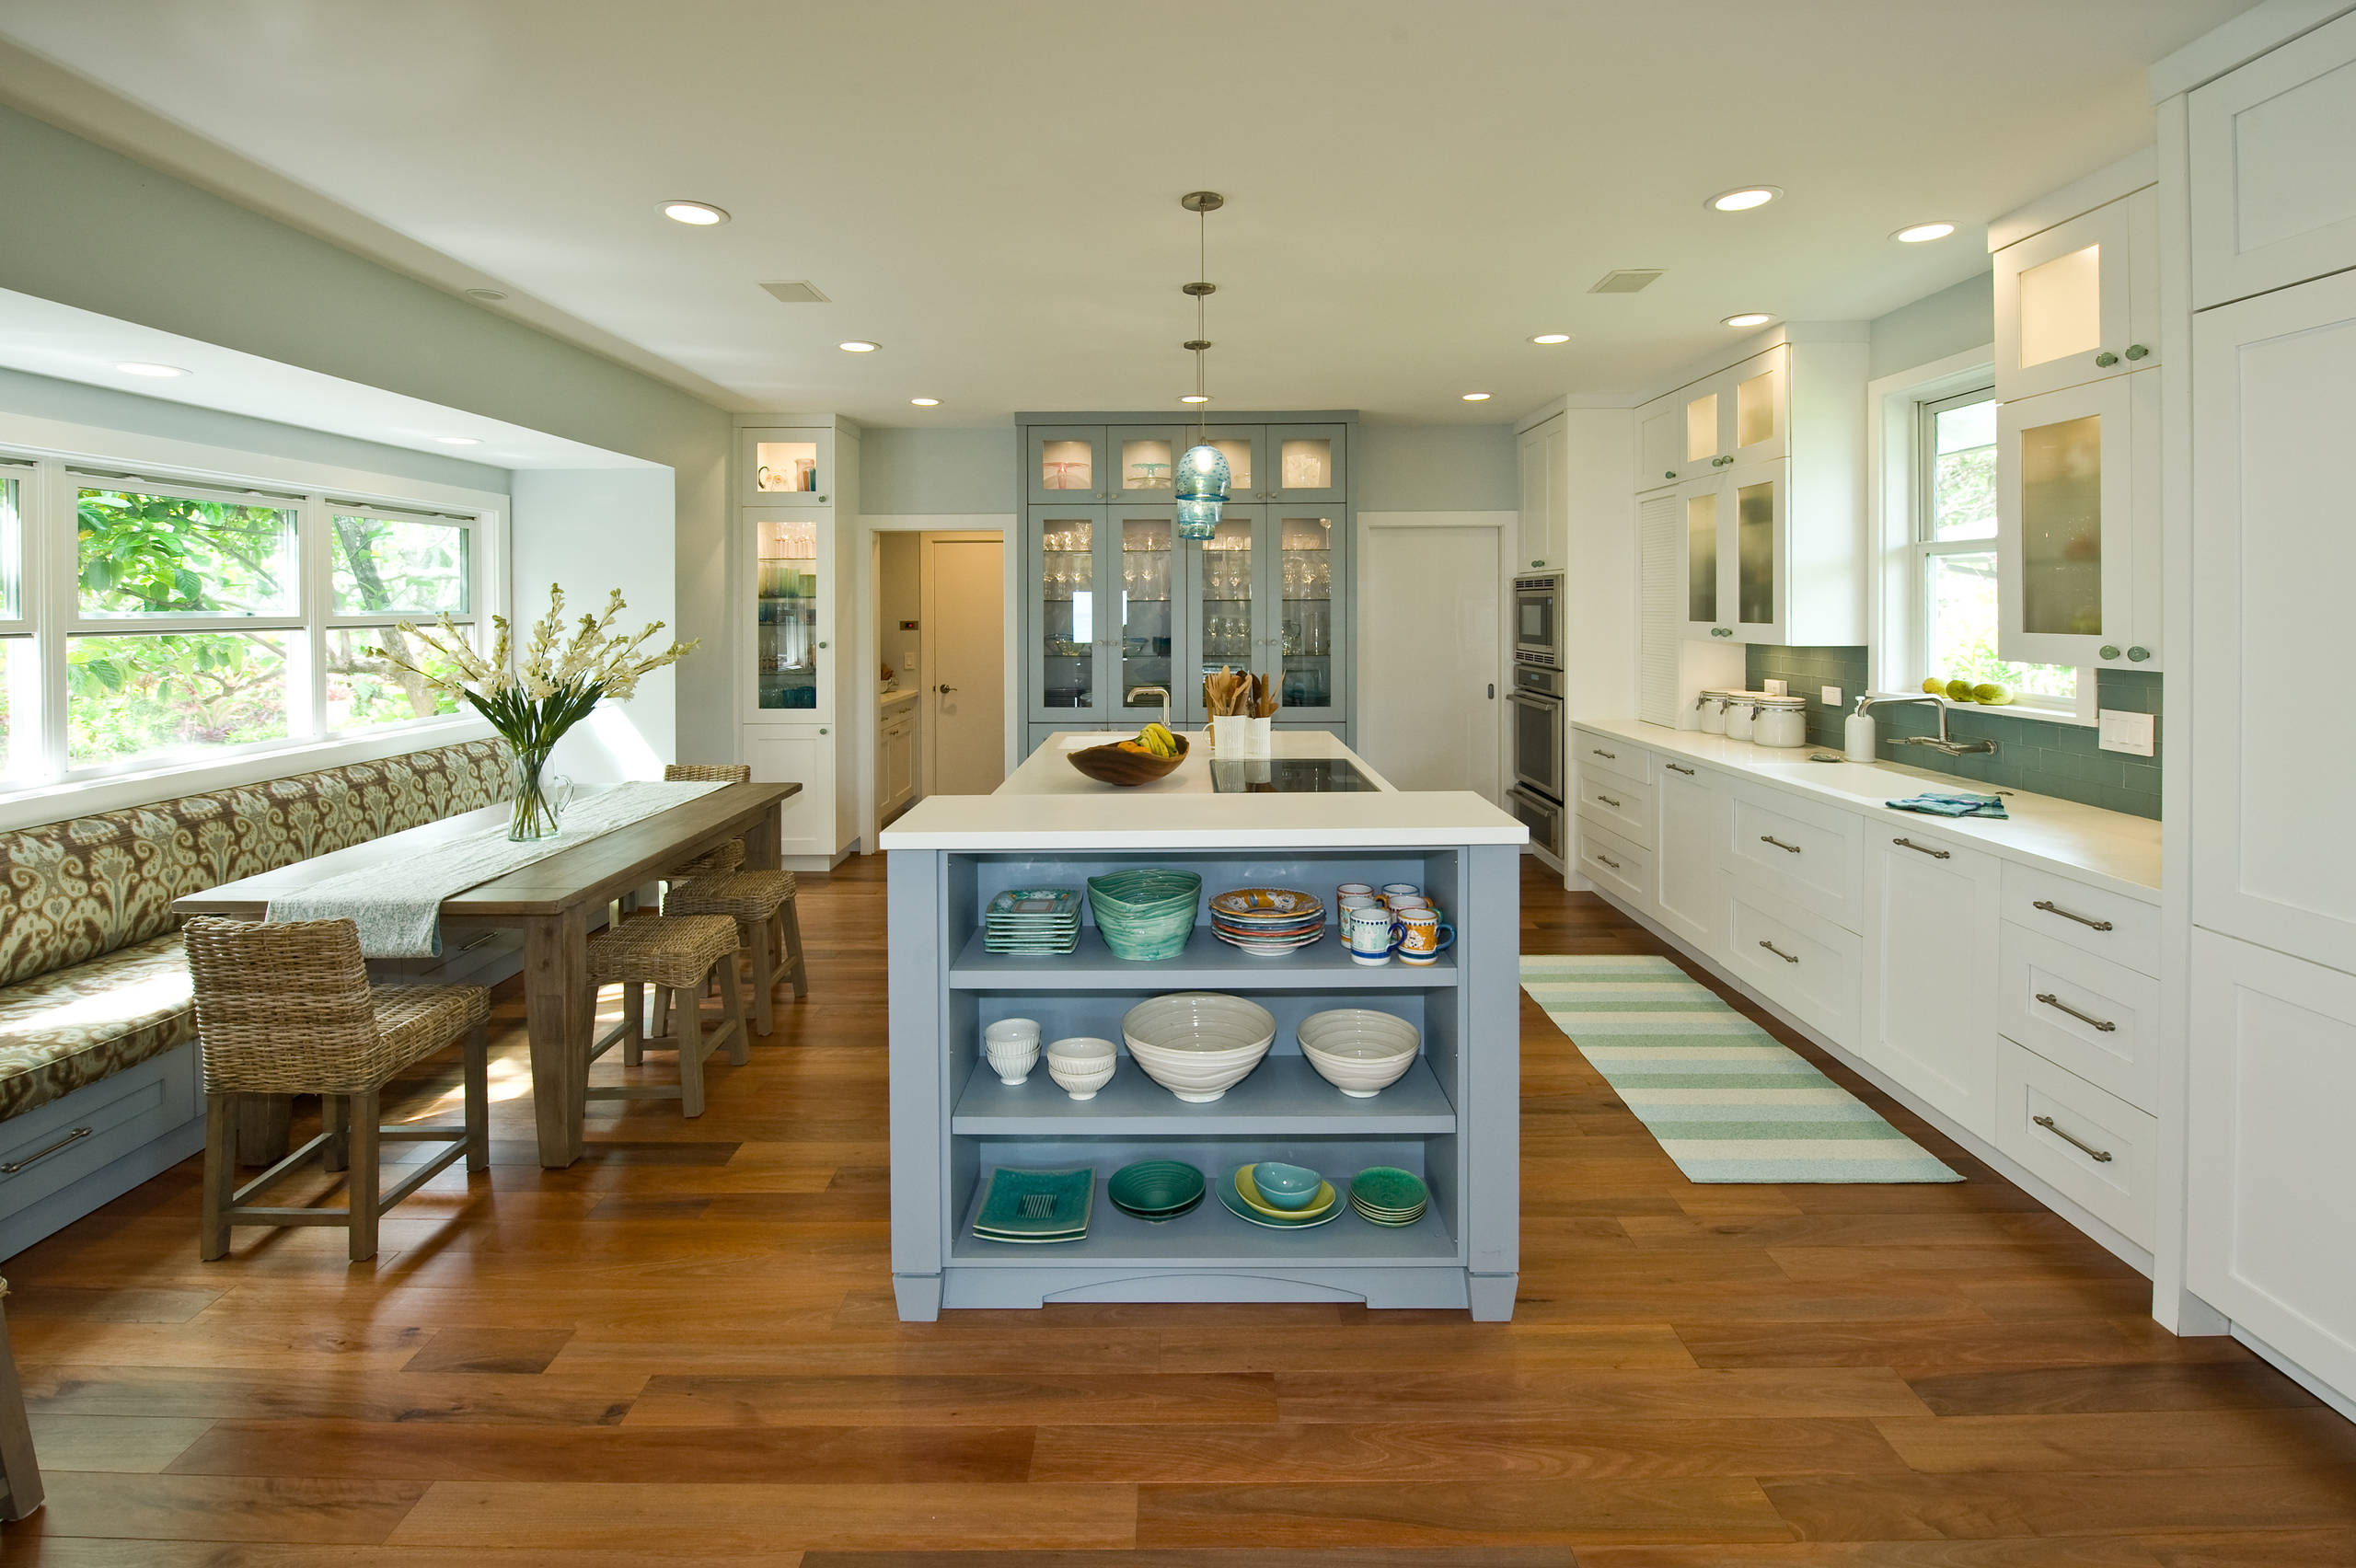 75 Beautiful Tropical Kitchen Pictures Ideas July 2021 Houzz